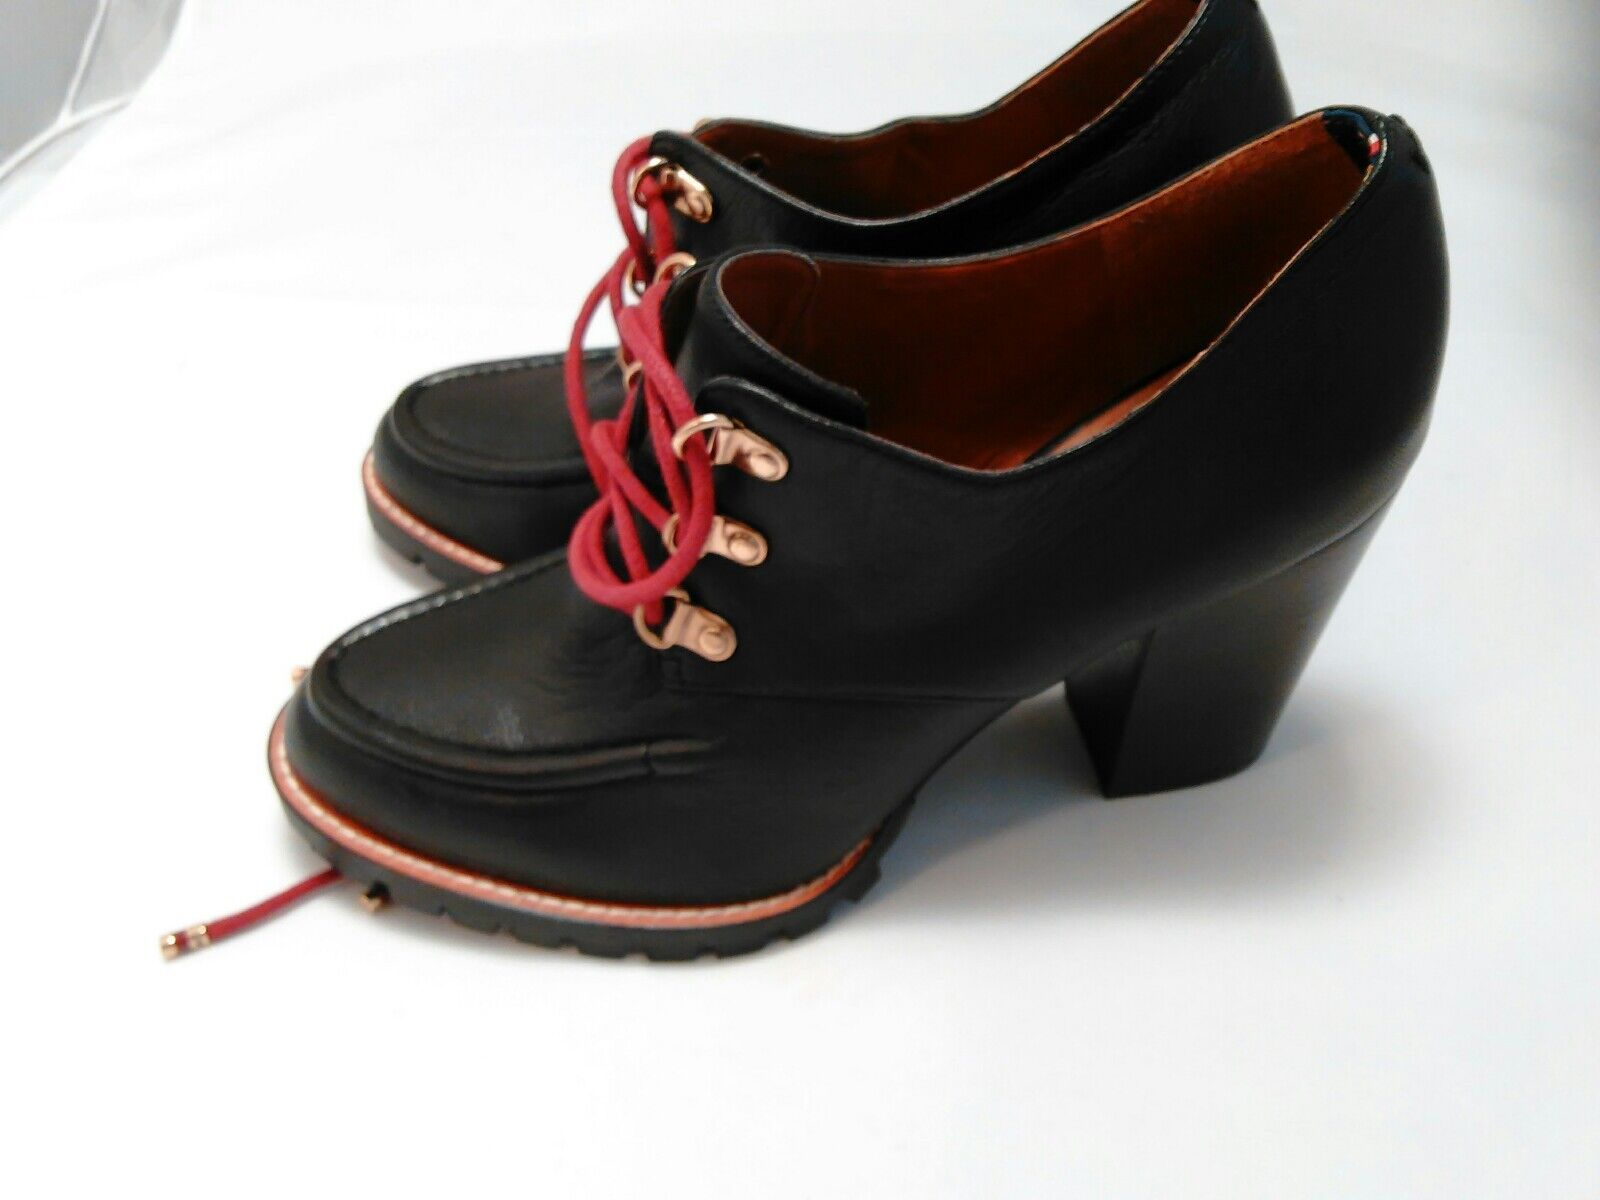 New with defects TOMMY HILFIGER Oxford  Black Platforms Shoes Sz 10M